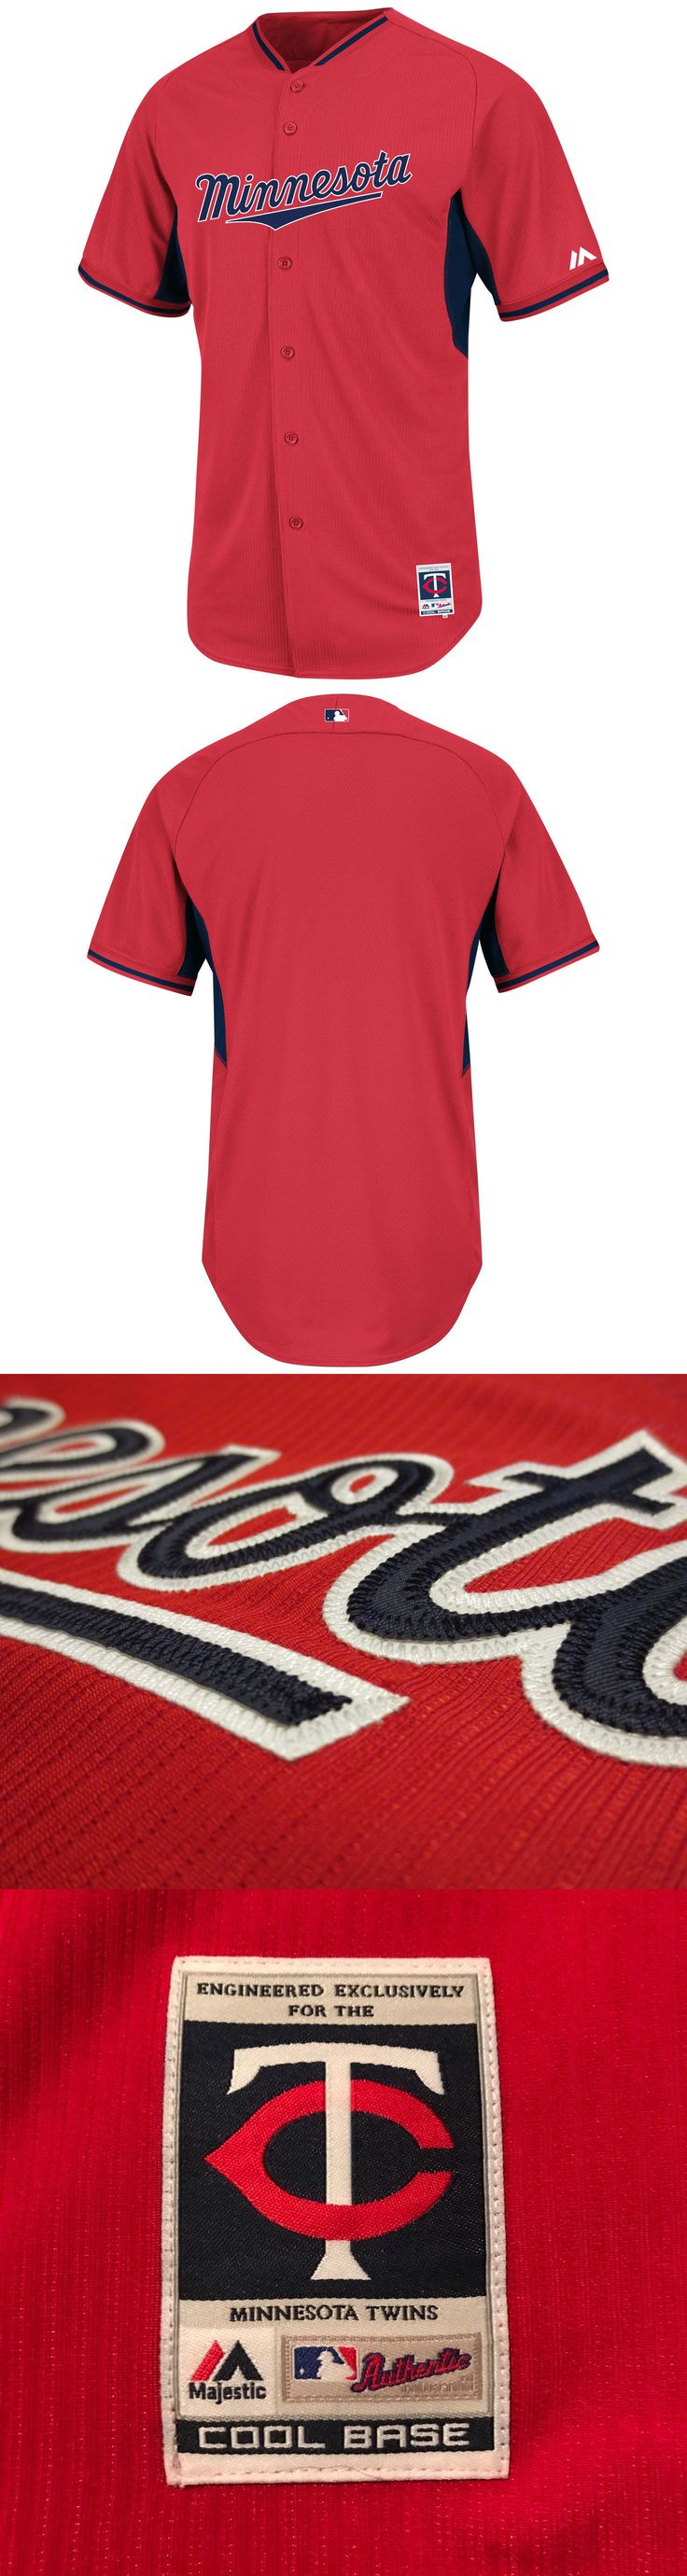 Baseball Shirts and Jerseys 181336: New Men Majestic Minnesota Twins Authentic Baseball Jersey Mlb Red Mrsp $126 -> BUY IT NOW ONLY: $44.99 on eBay!